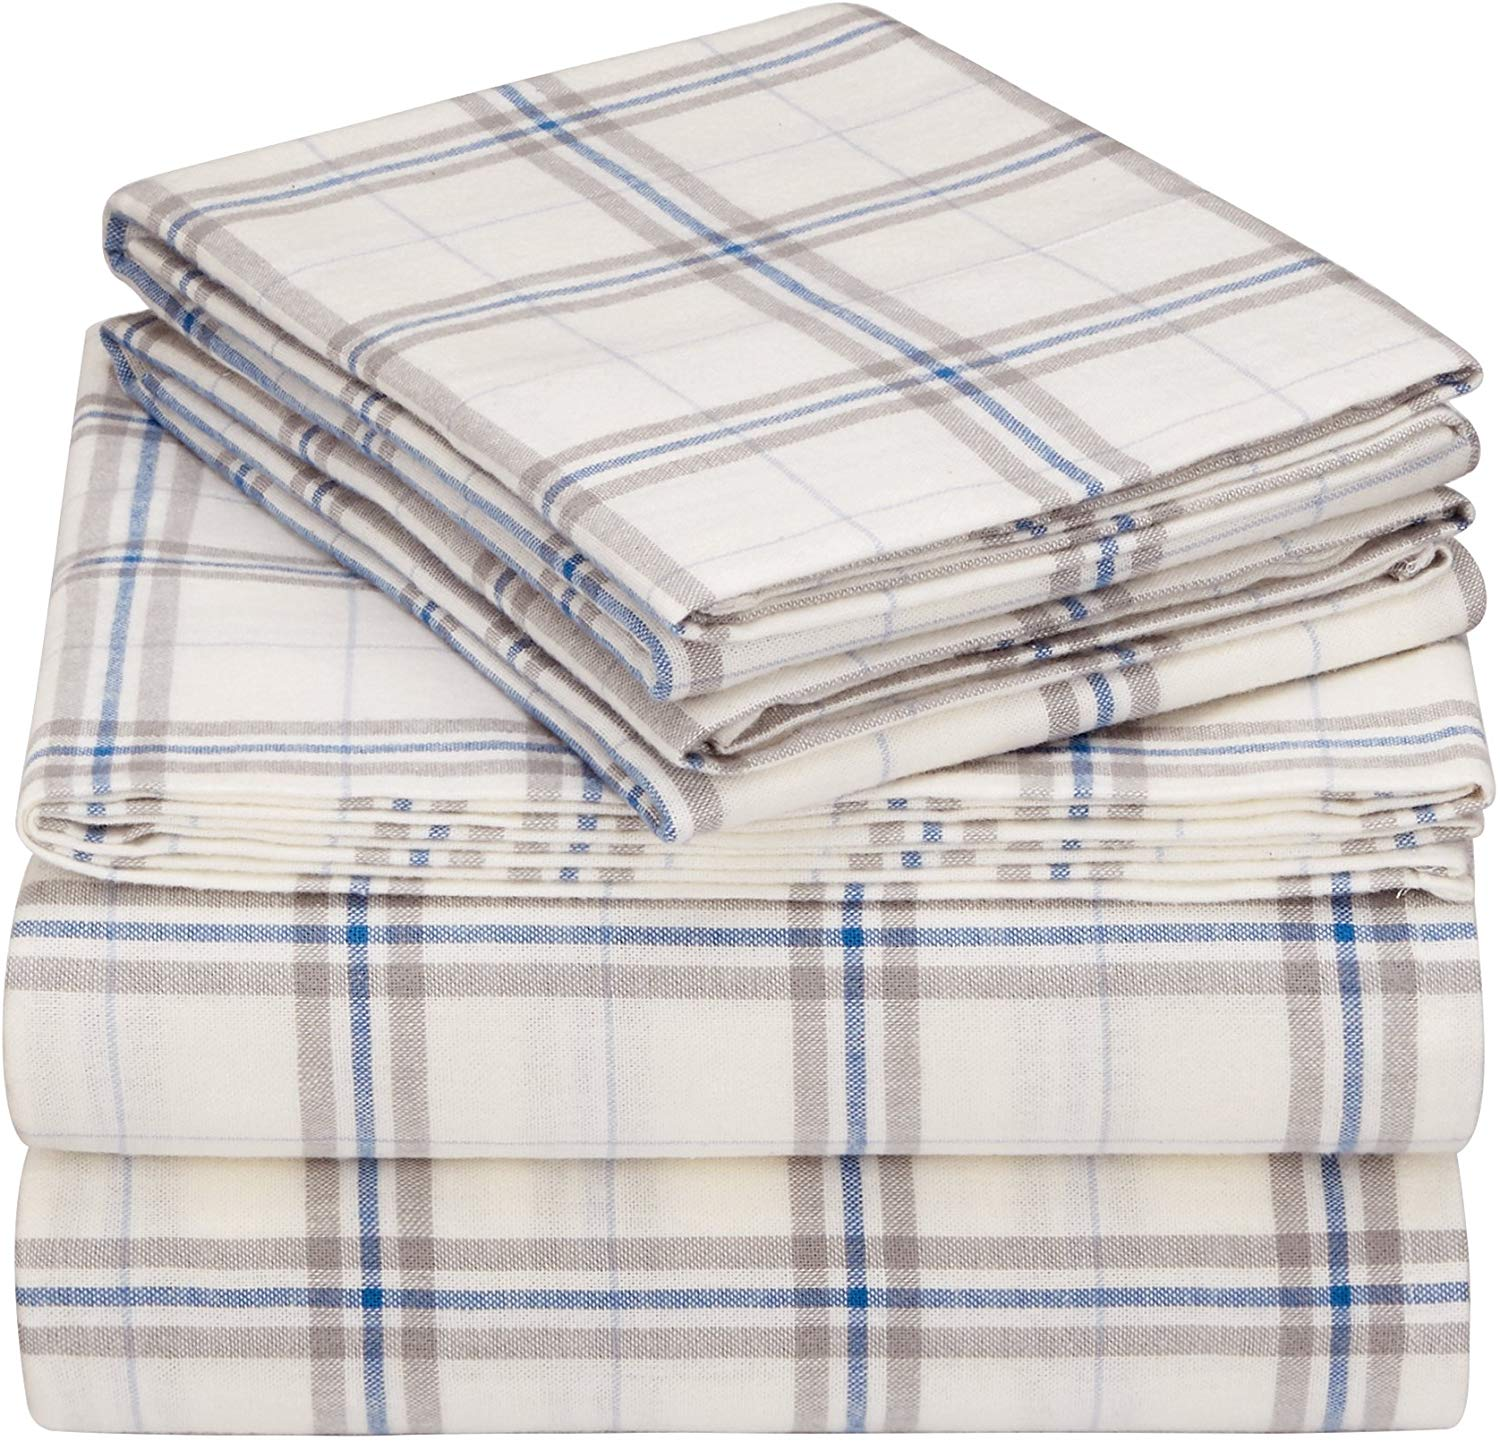 Pinzon 160 Gram Plaid Flannel Cotton Bed Sheet Set, King, Cream / Blue Stripe Plaid